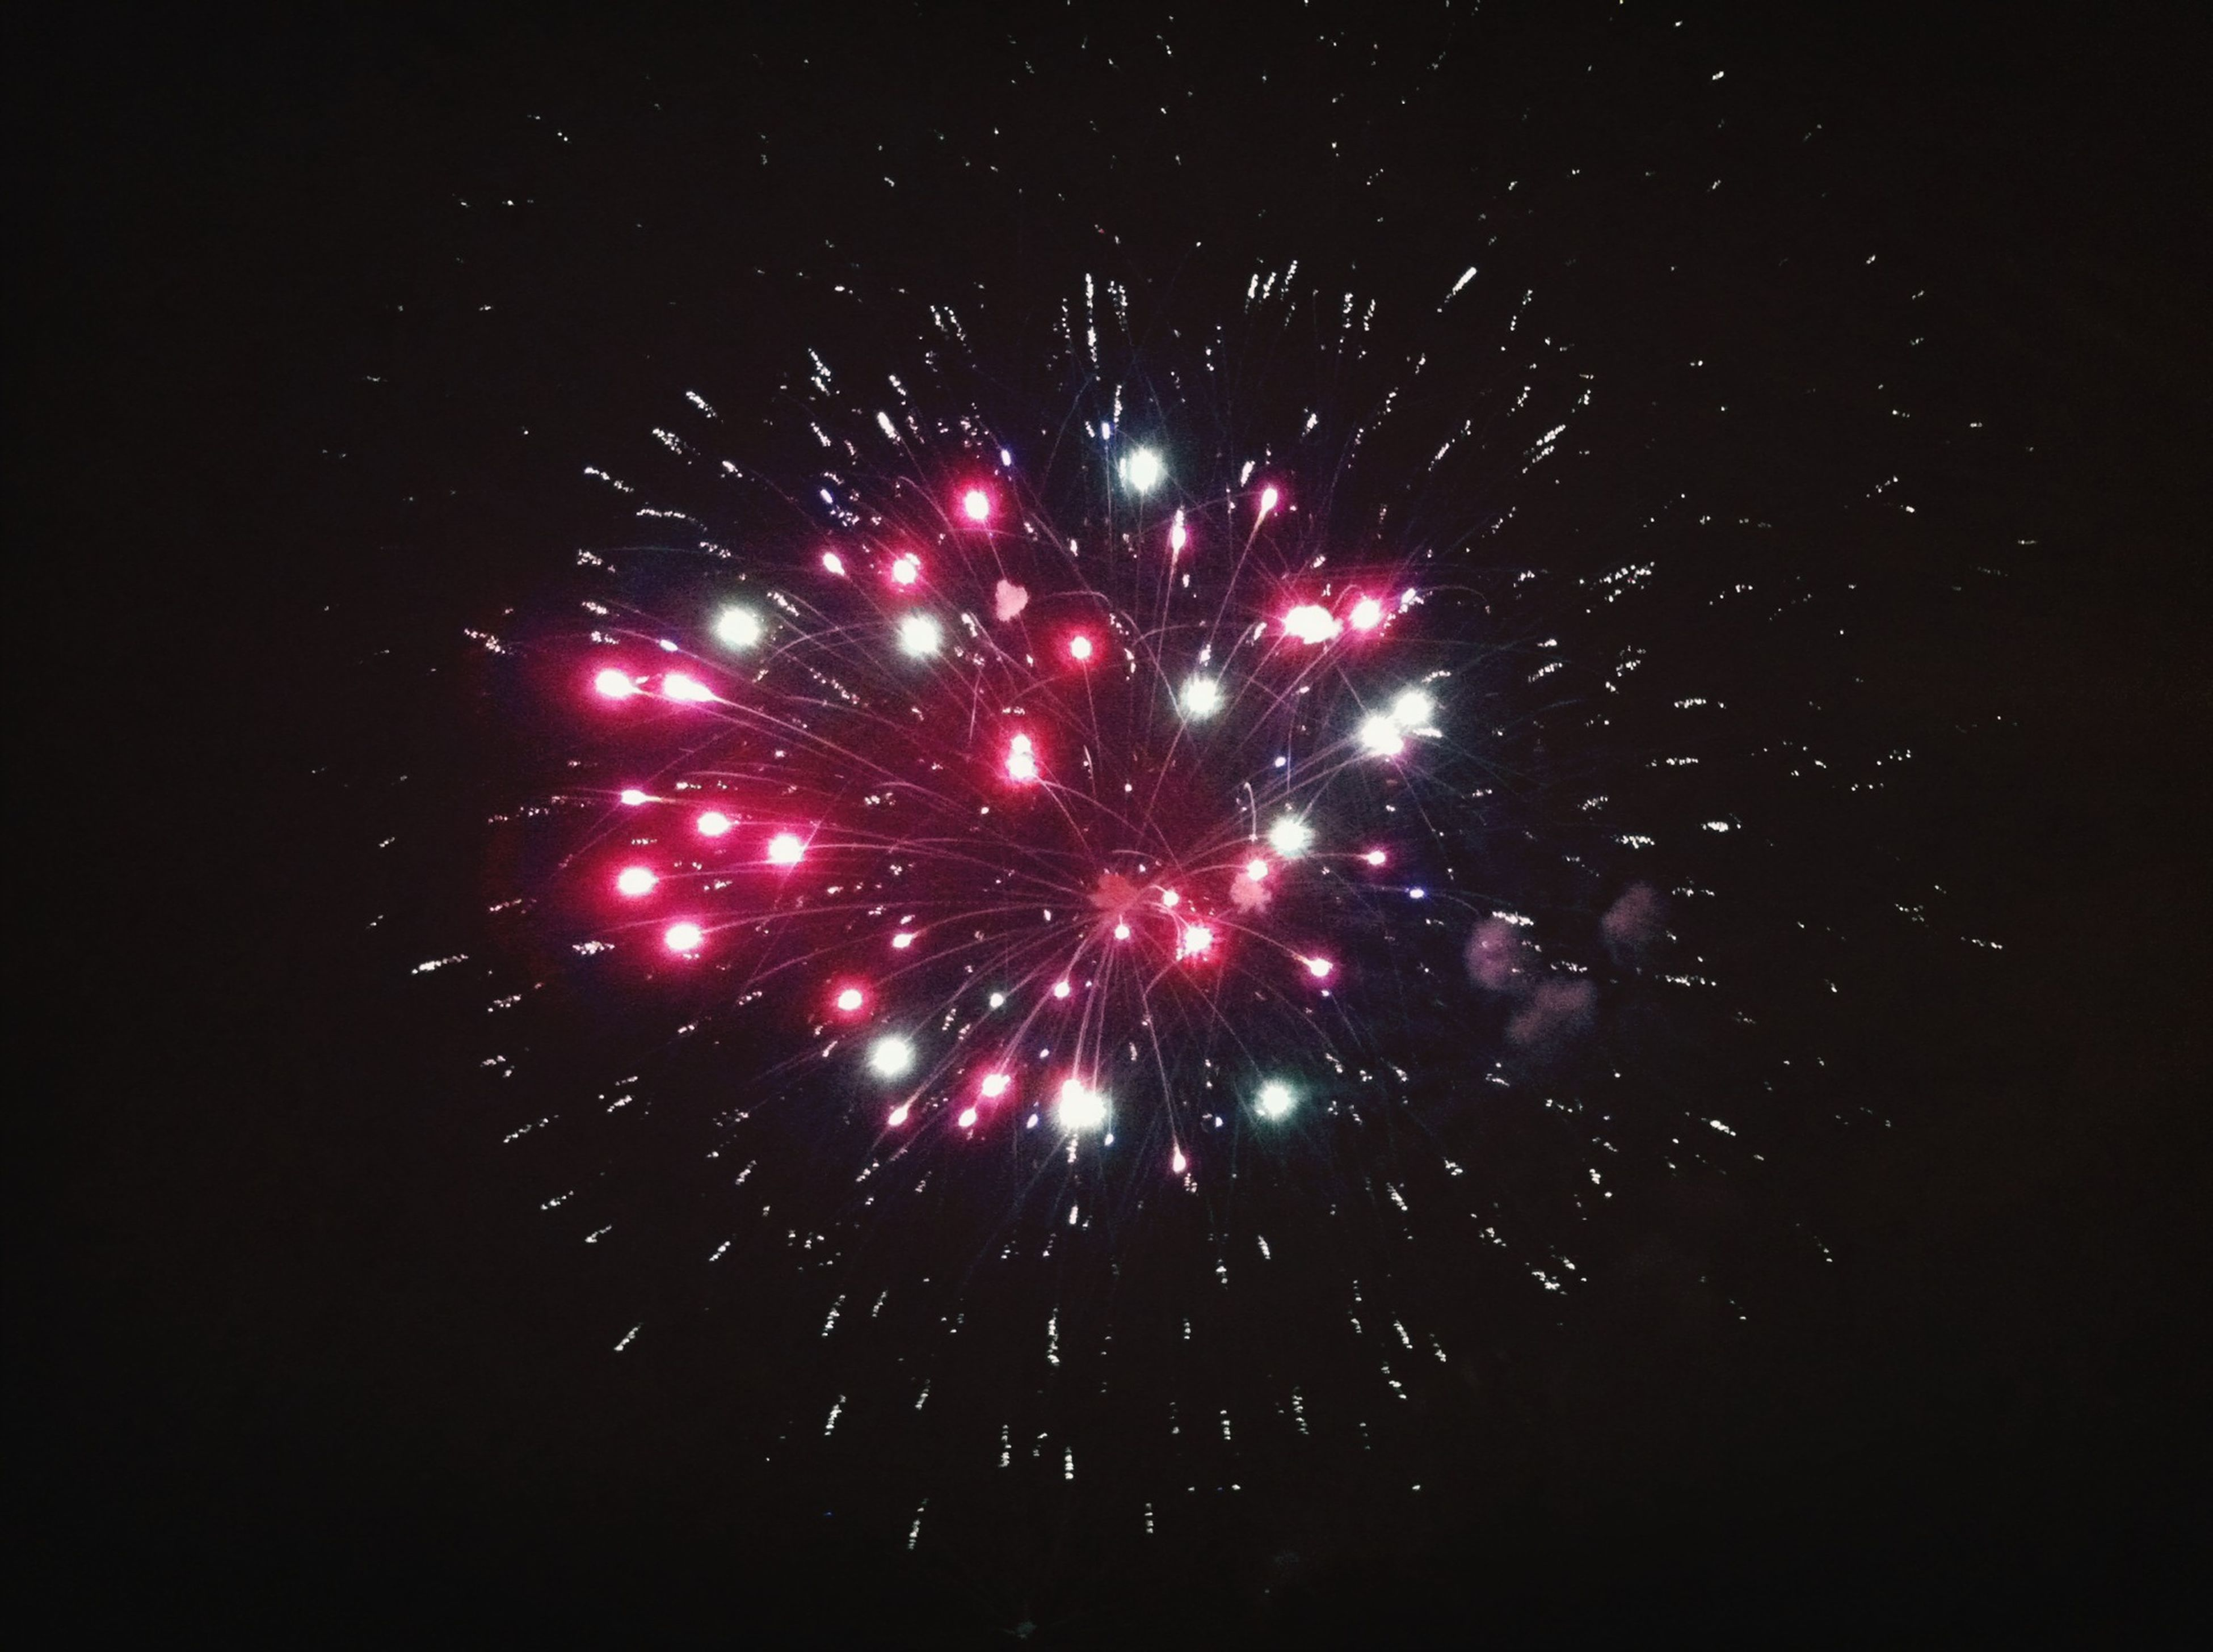 night, celebration, illuminated, firework display, low angle view, exploding, glowing, long exposure, firework - man made object, motion, event, firework, red, arts culture and entertainment, sparks, dark, sky, entertainment, celebration event, no people